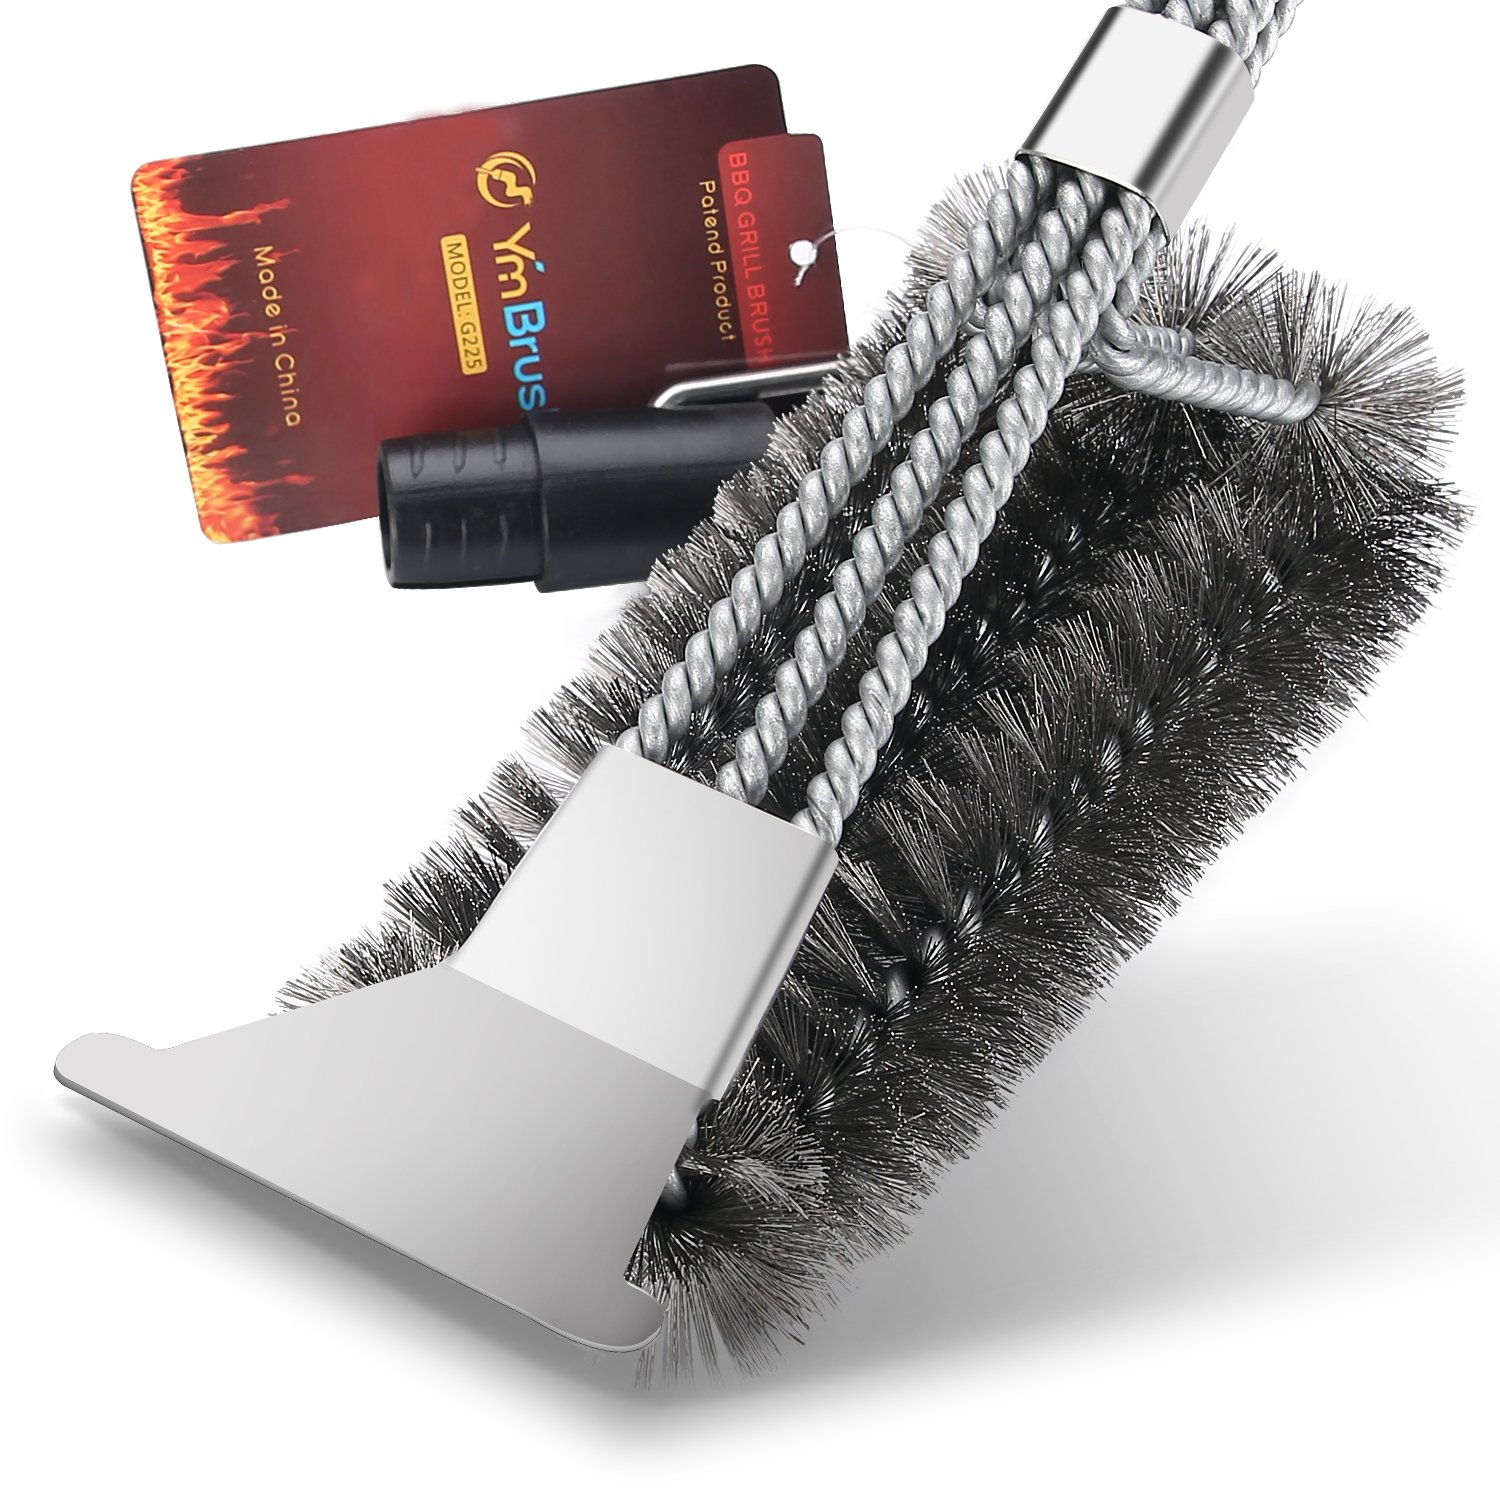 AOTOP Grill Brush and Scraper, BBQ Grill Brush Cleaner, 18'' Stainless Steel Woven Wire 3 in 1, Barbecue Grill Cleaning Brush Kit 360° Rotation Clean Safe, Durable & Effective Barbecue Tool